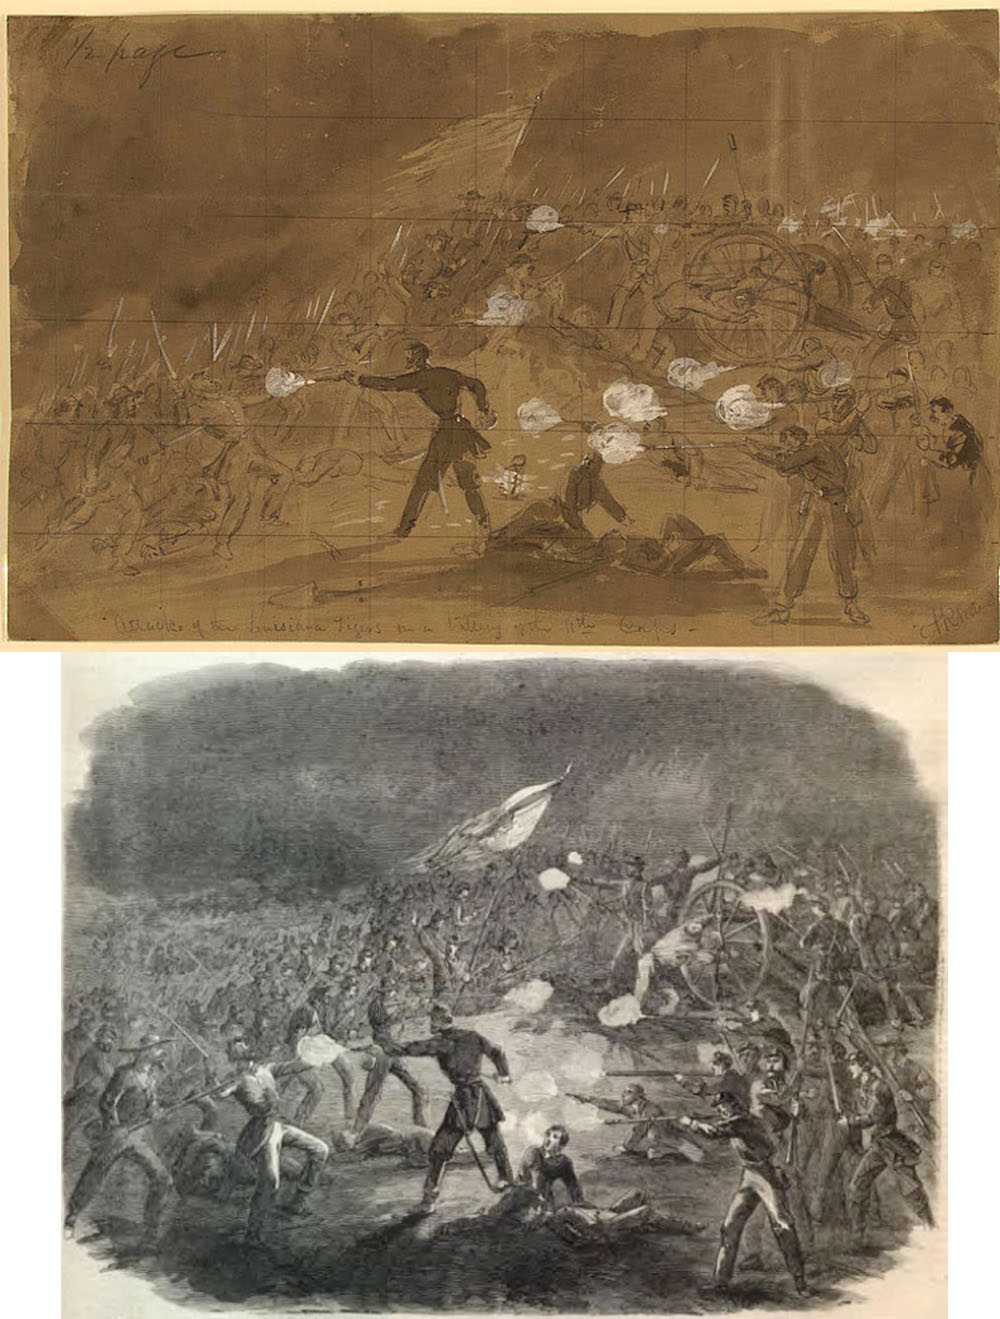 Alfred Waud,Attack of the Louisiana Tigers on a Battery of the 11th Corps at Gettysburg, (July 1, 1863)ink and Chinese white on brown paper; the wood engraving in Harpers of the same scene, published as a half-page illustration on August 8, 1863, the third consecutive issue to provide extensive coverage of the battle